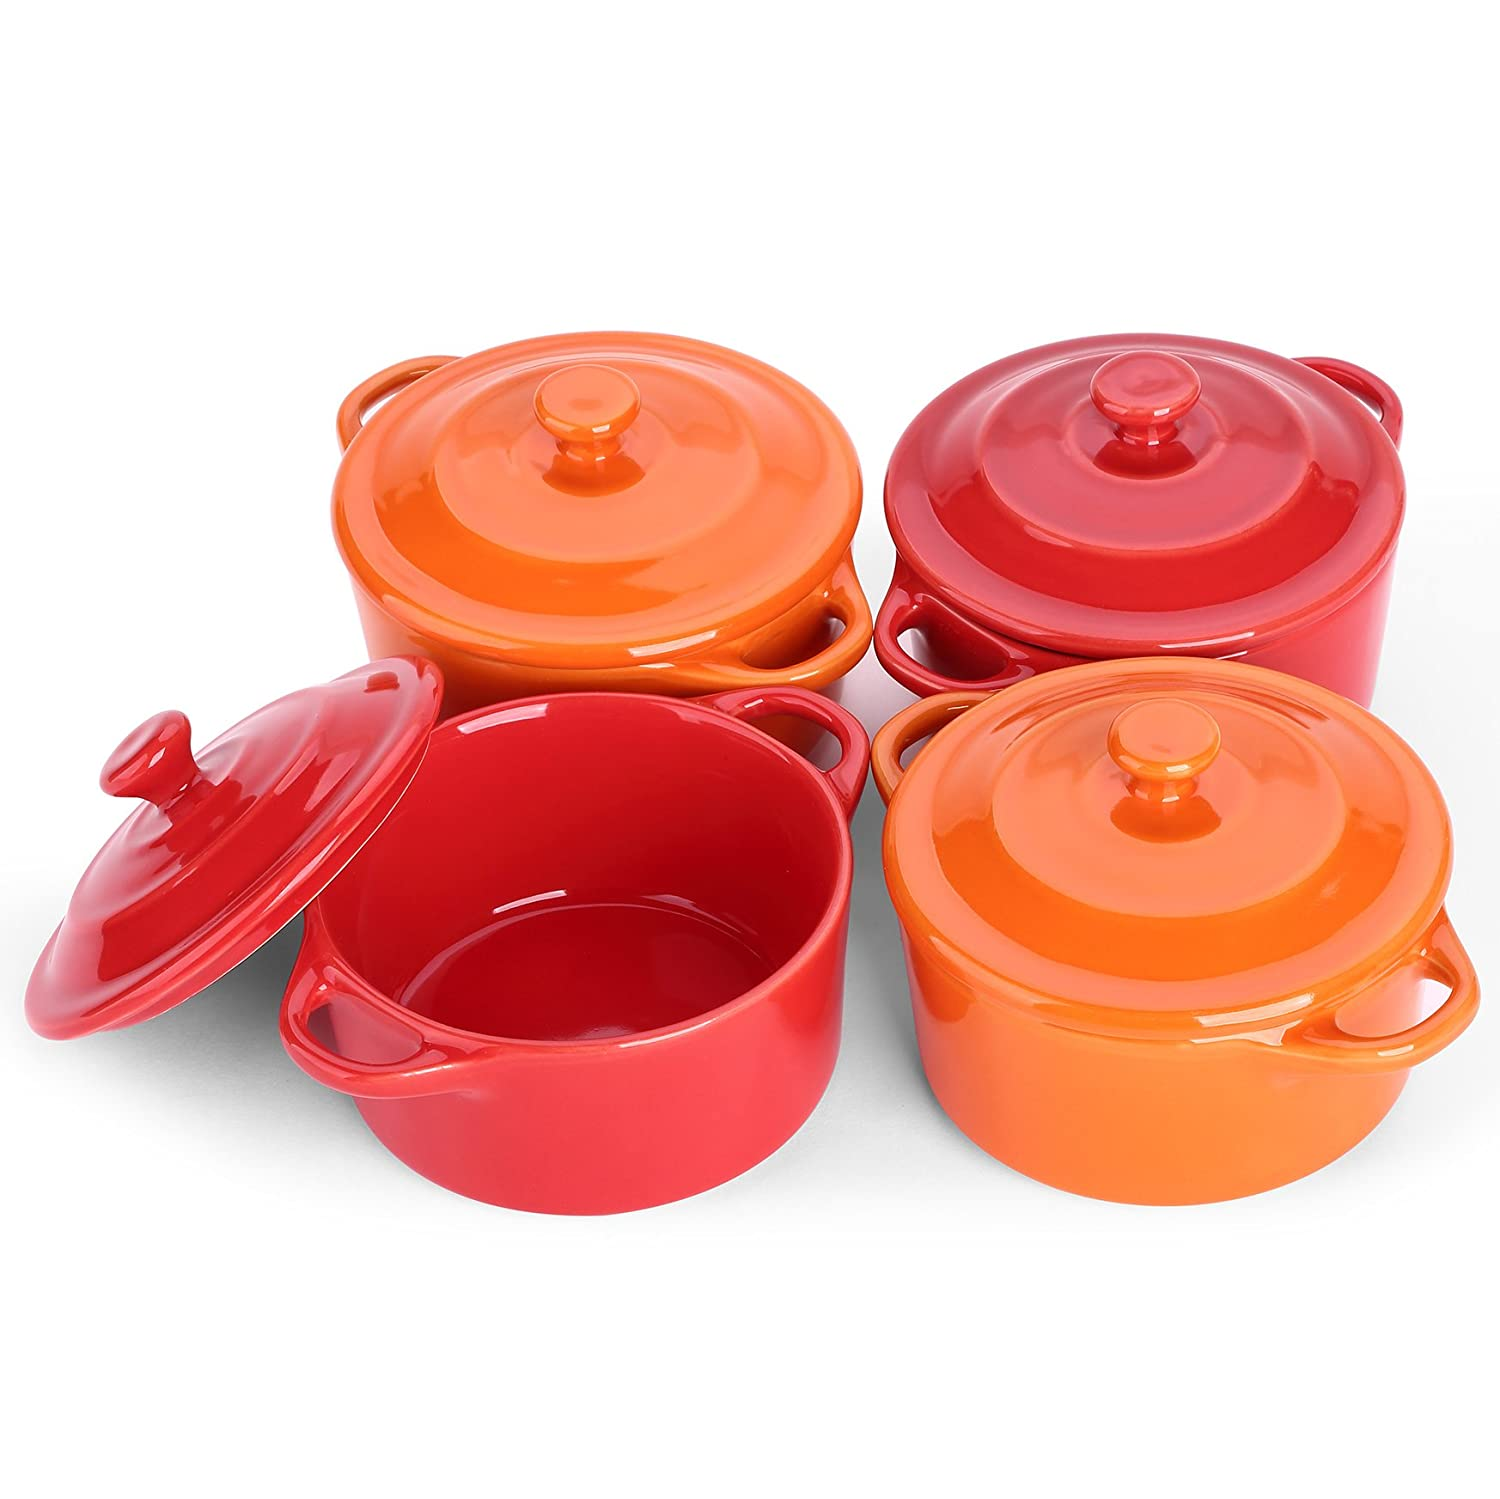 Lifver 7 oz Ceramic Souffle Dish/Mini Casserole/Ramekins, Dip Bowls, Set of 4, Red & Orange, Round